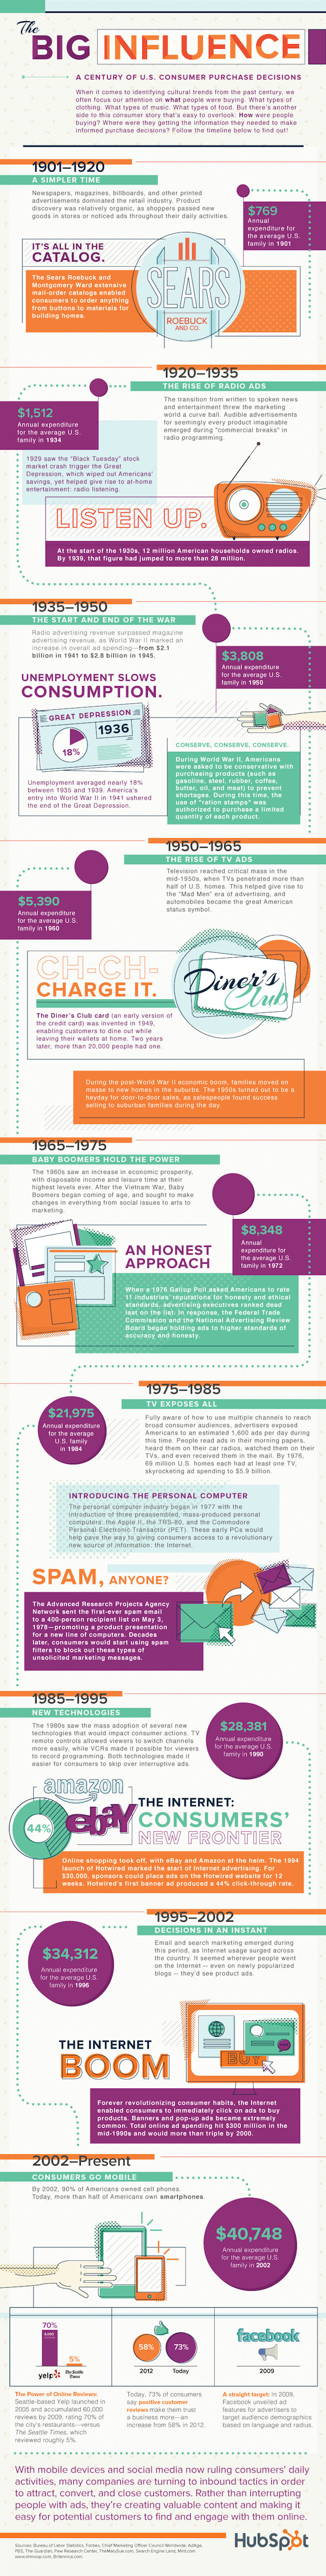 Purchase-Decisions-Infographic